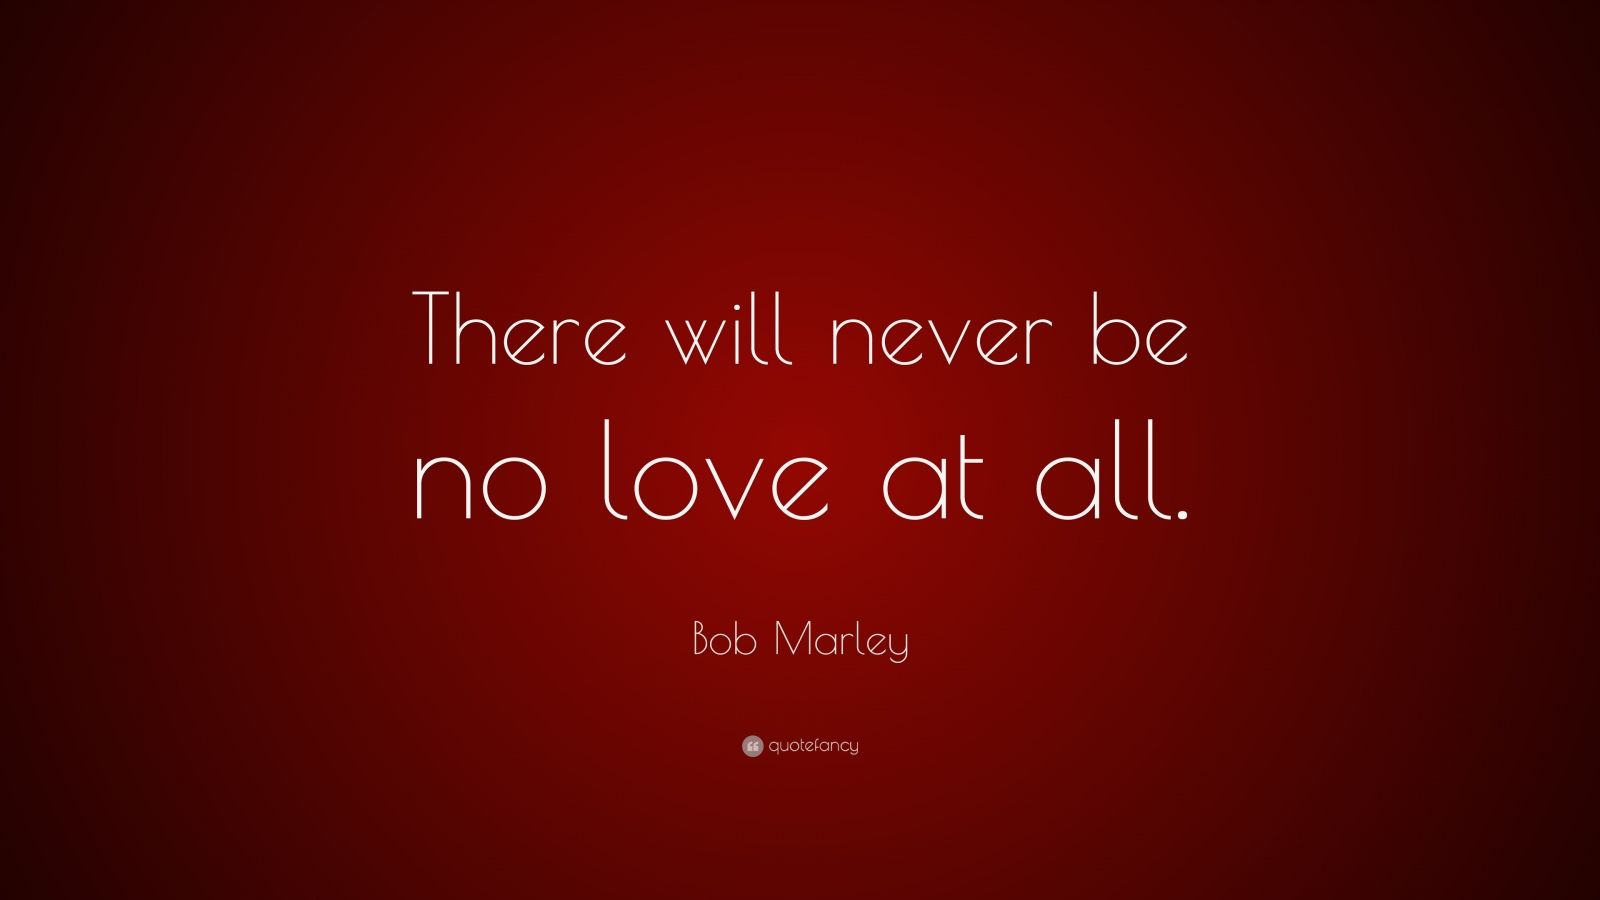 Rasta Love Quotes Bob Marley Quotes 100 Wallpapers  Quotefancy